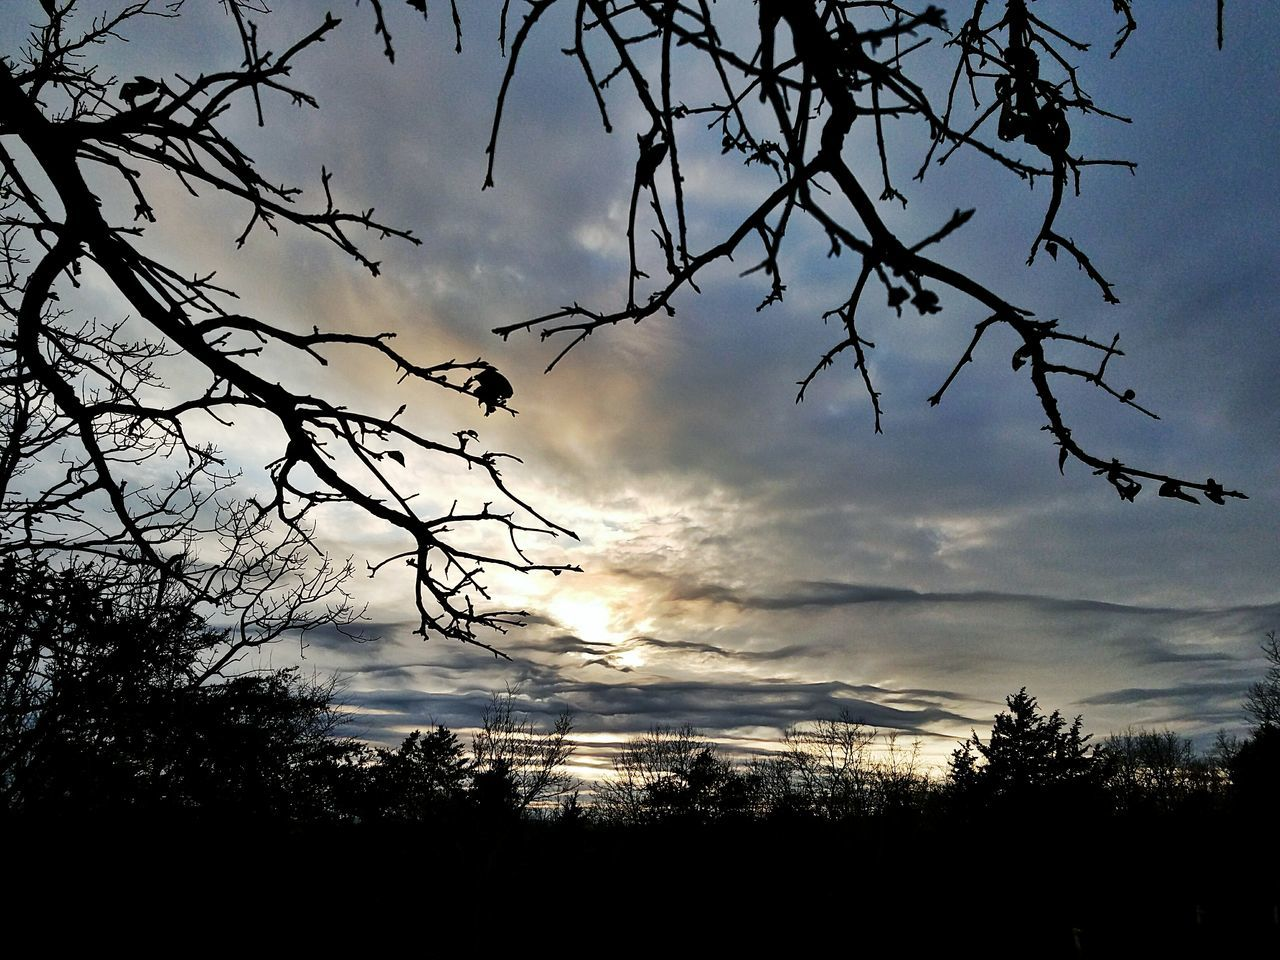 tree, silhouette, sky, nature, beauty in nature, cloud - sky, low angle view, no people, tranquility, sunset, outdoors, scenics, branch, day